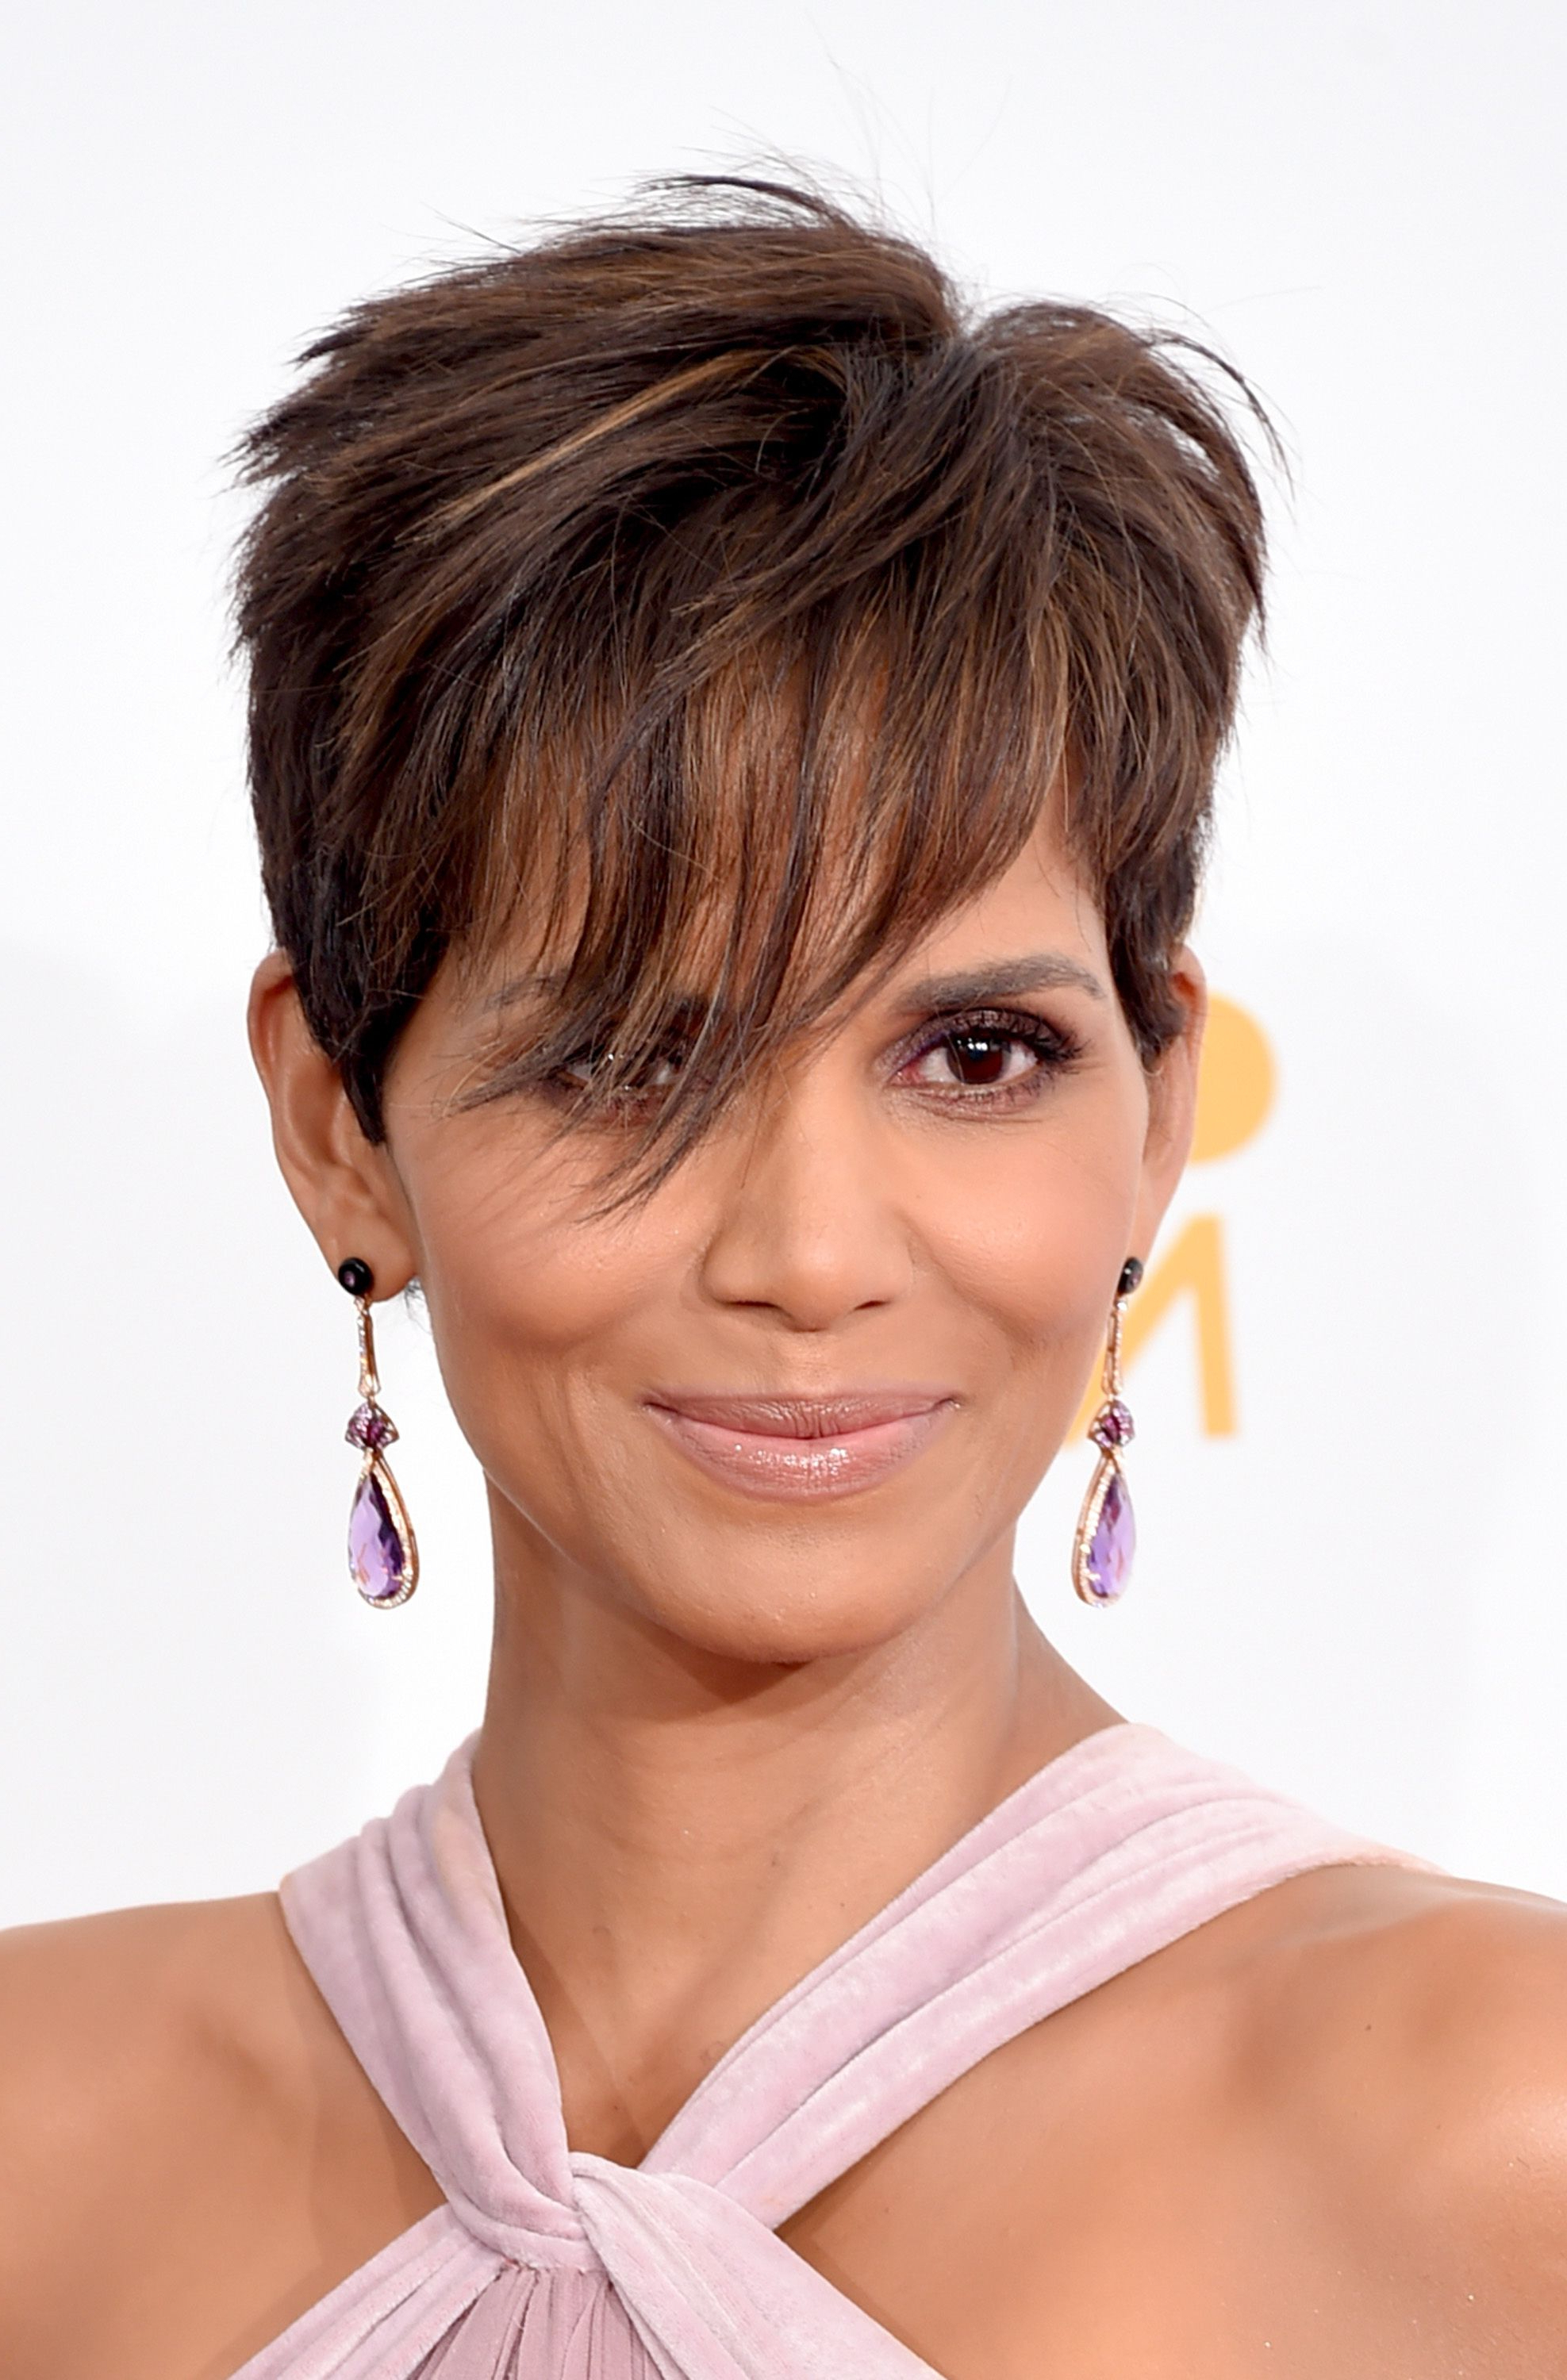 40 Best Short Pixie Cut Hairstyles 2019 – Cute Pixie Haircuts For Women In Famous Bright And Beautiful Pixie Bob Hairstyles (View 19 of 20)